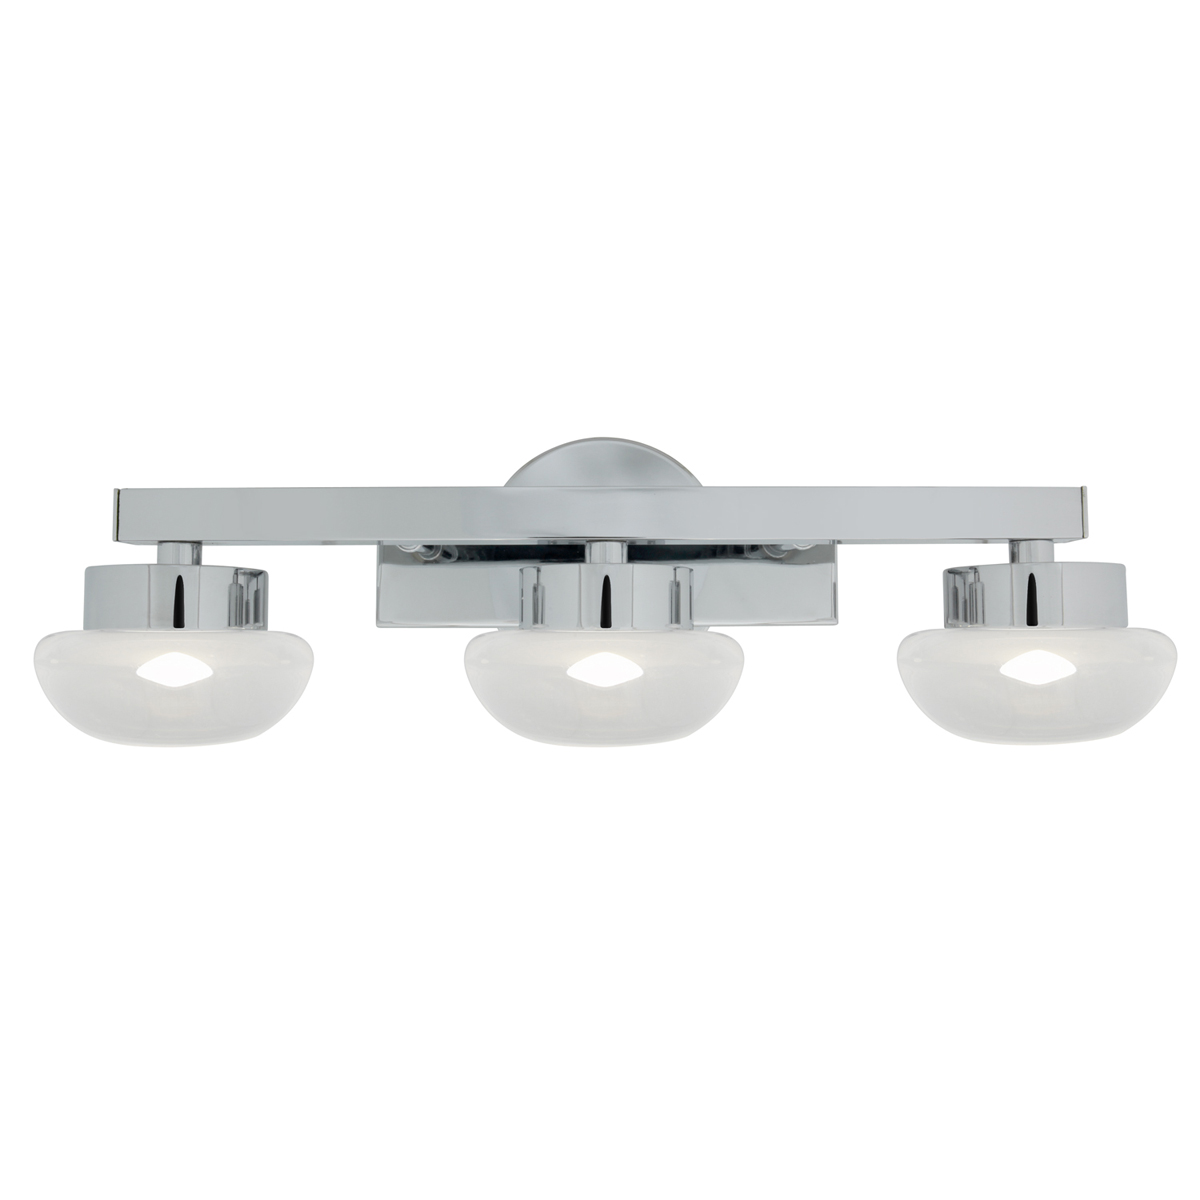 Vanity Led Fixtures : Access Lighting (70043LED) Dewdrop 3-Light LED Vanity Fixture shown in Chrome